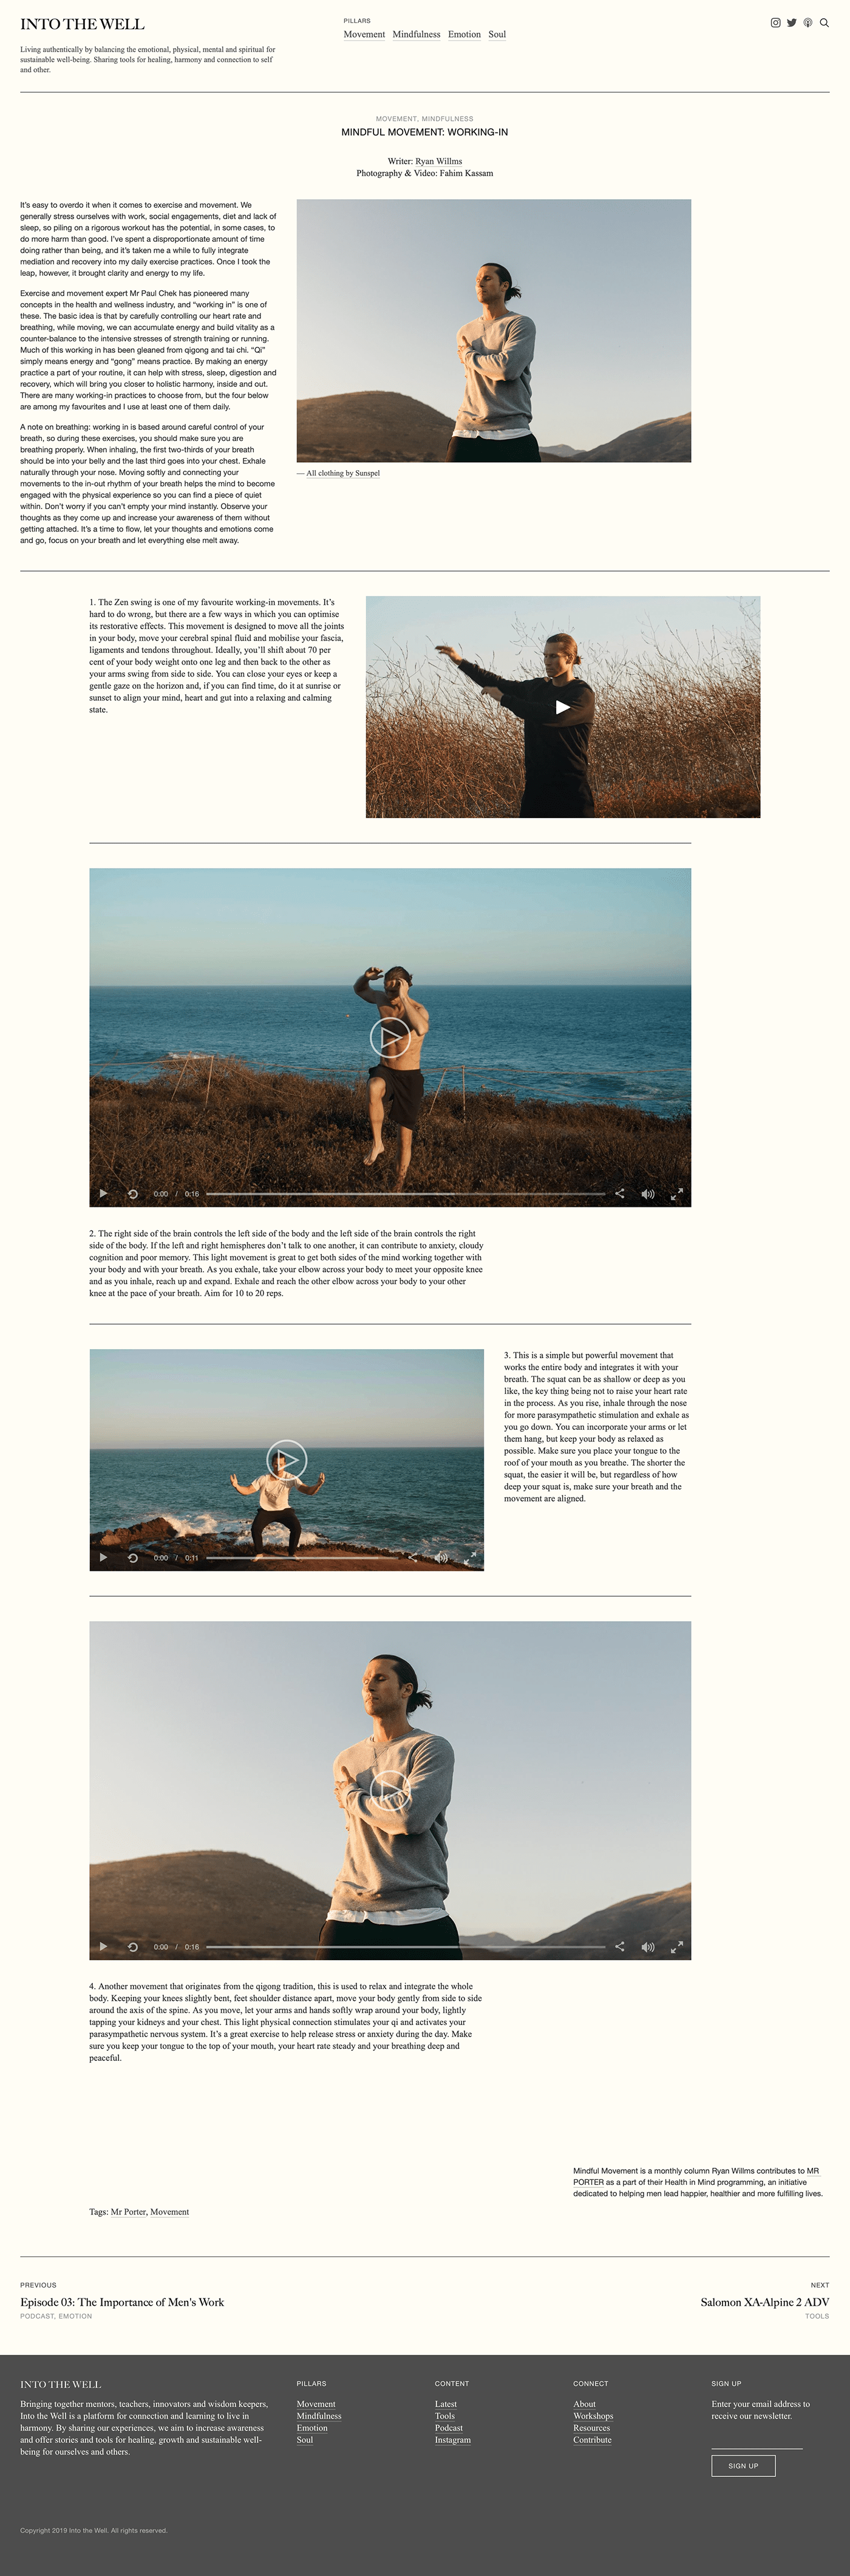 Into The Well Ryan Willms Health fitness mental health squarespace grid based magazine The Printer's Son